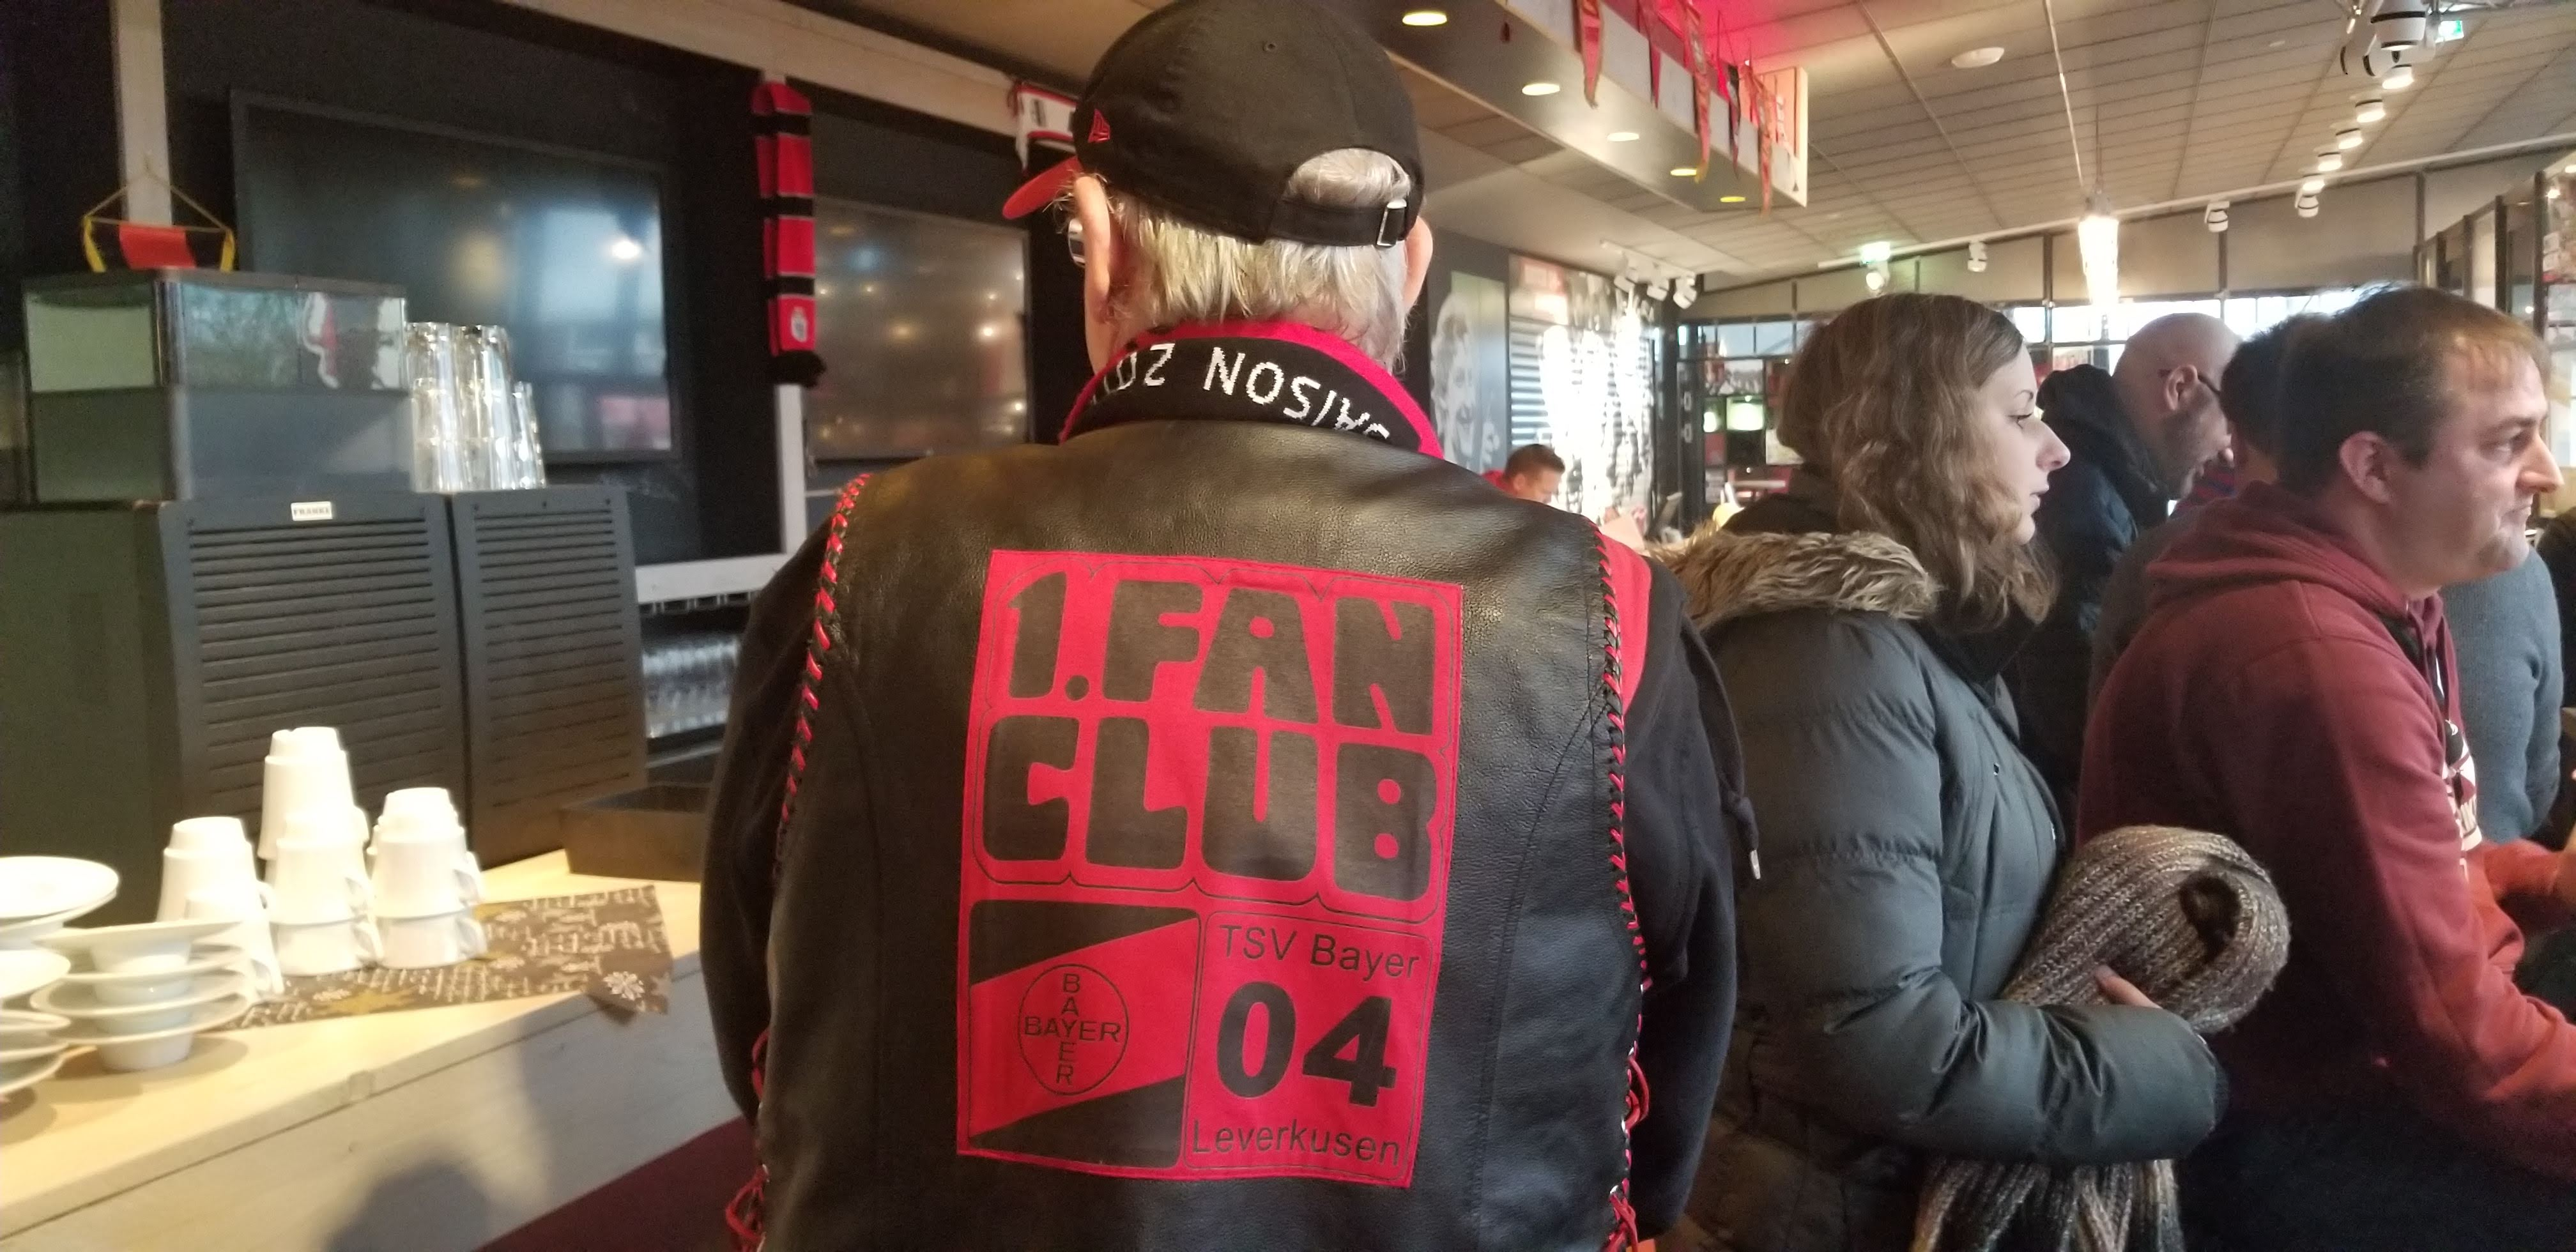 Bayer 04 Leverkusen supporter